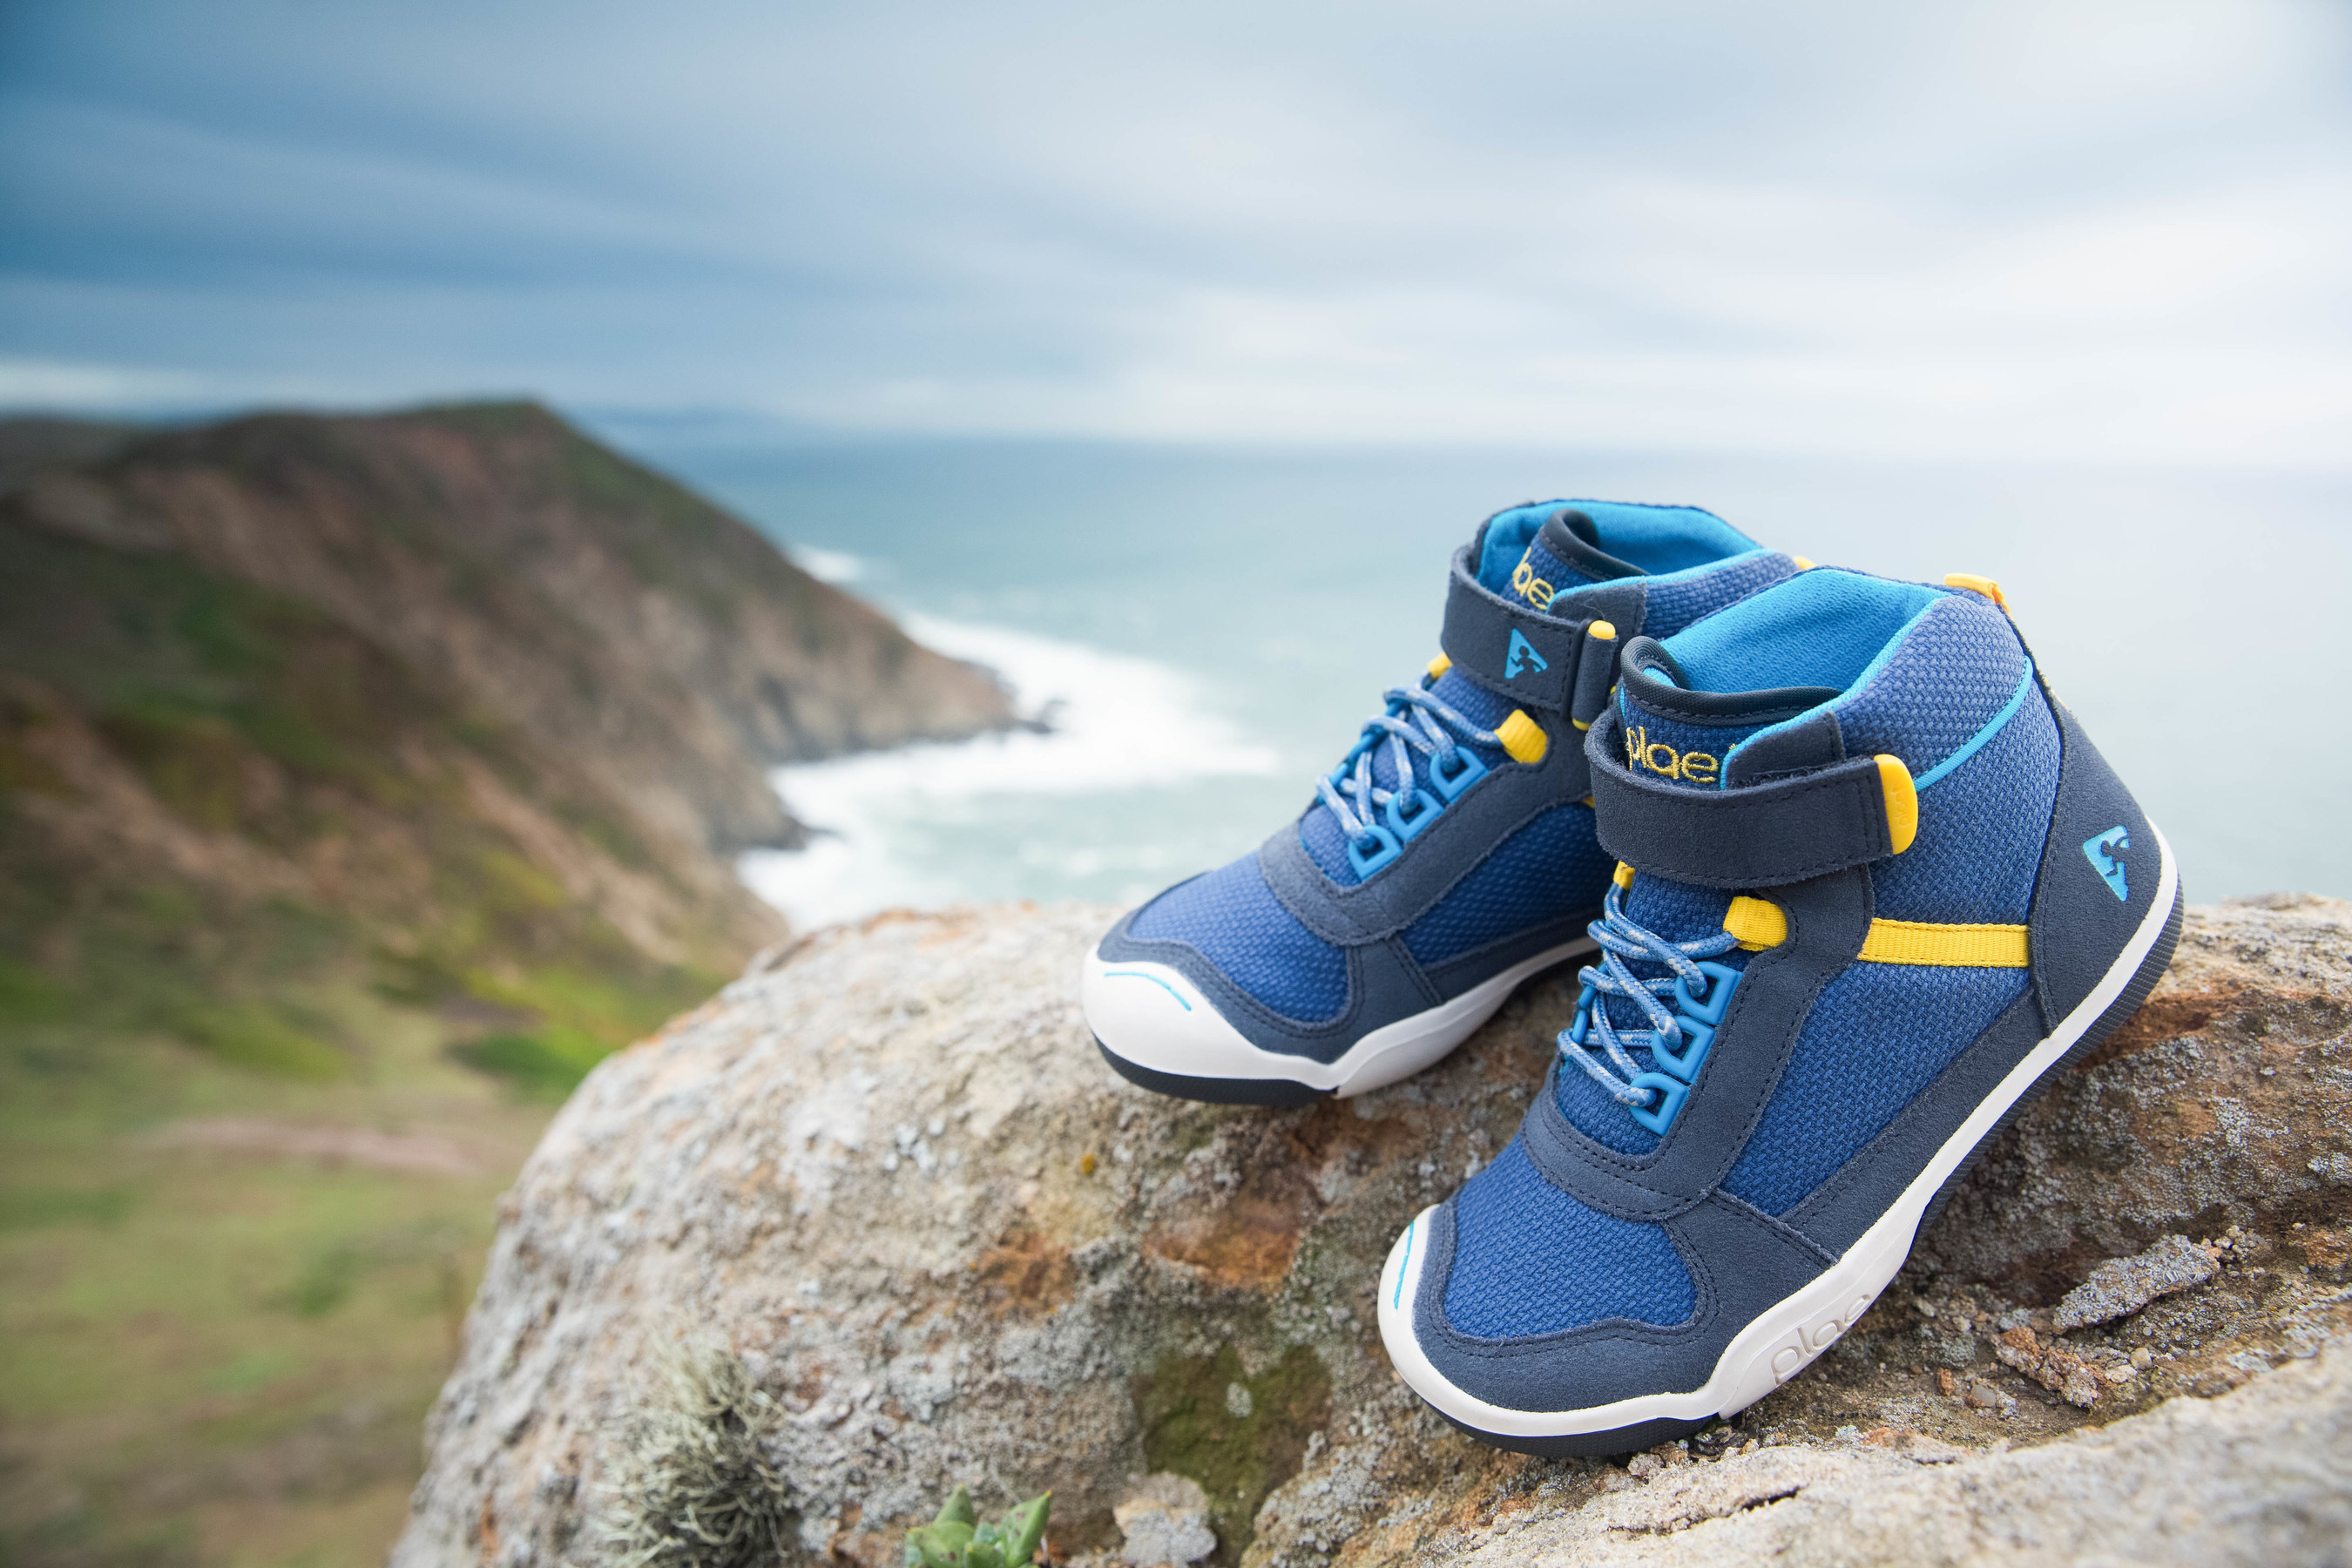 PLAE's new Kaiden shoe combines the sleek look of a hi-top with the durability of a waterproof hiking boot.